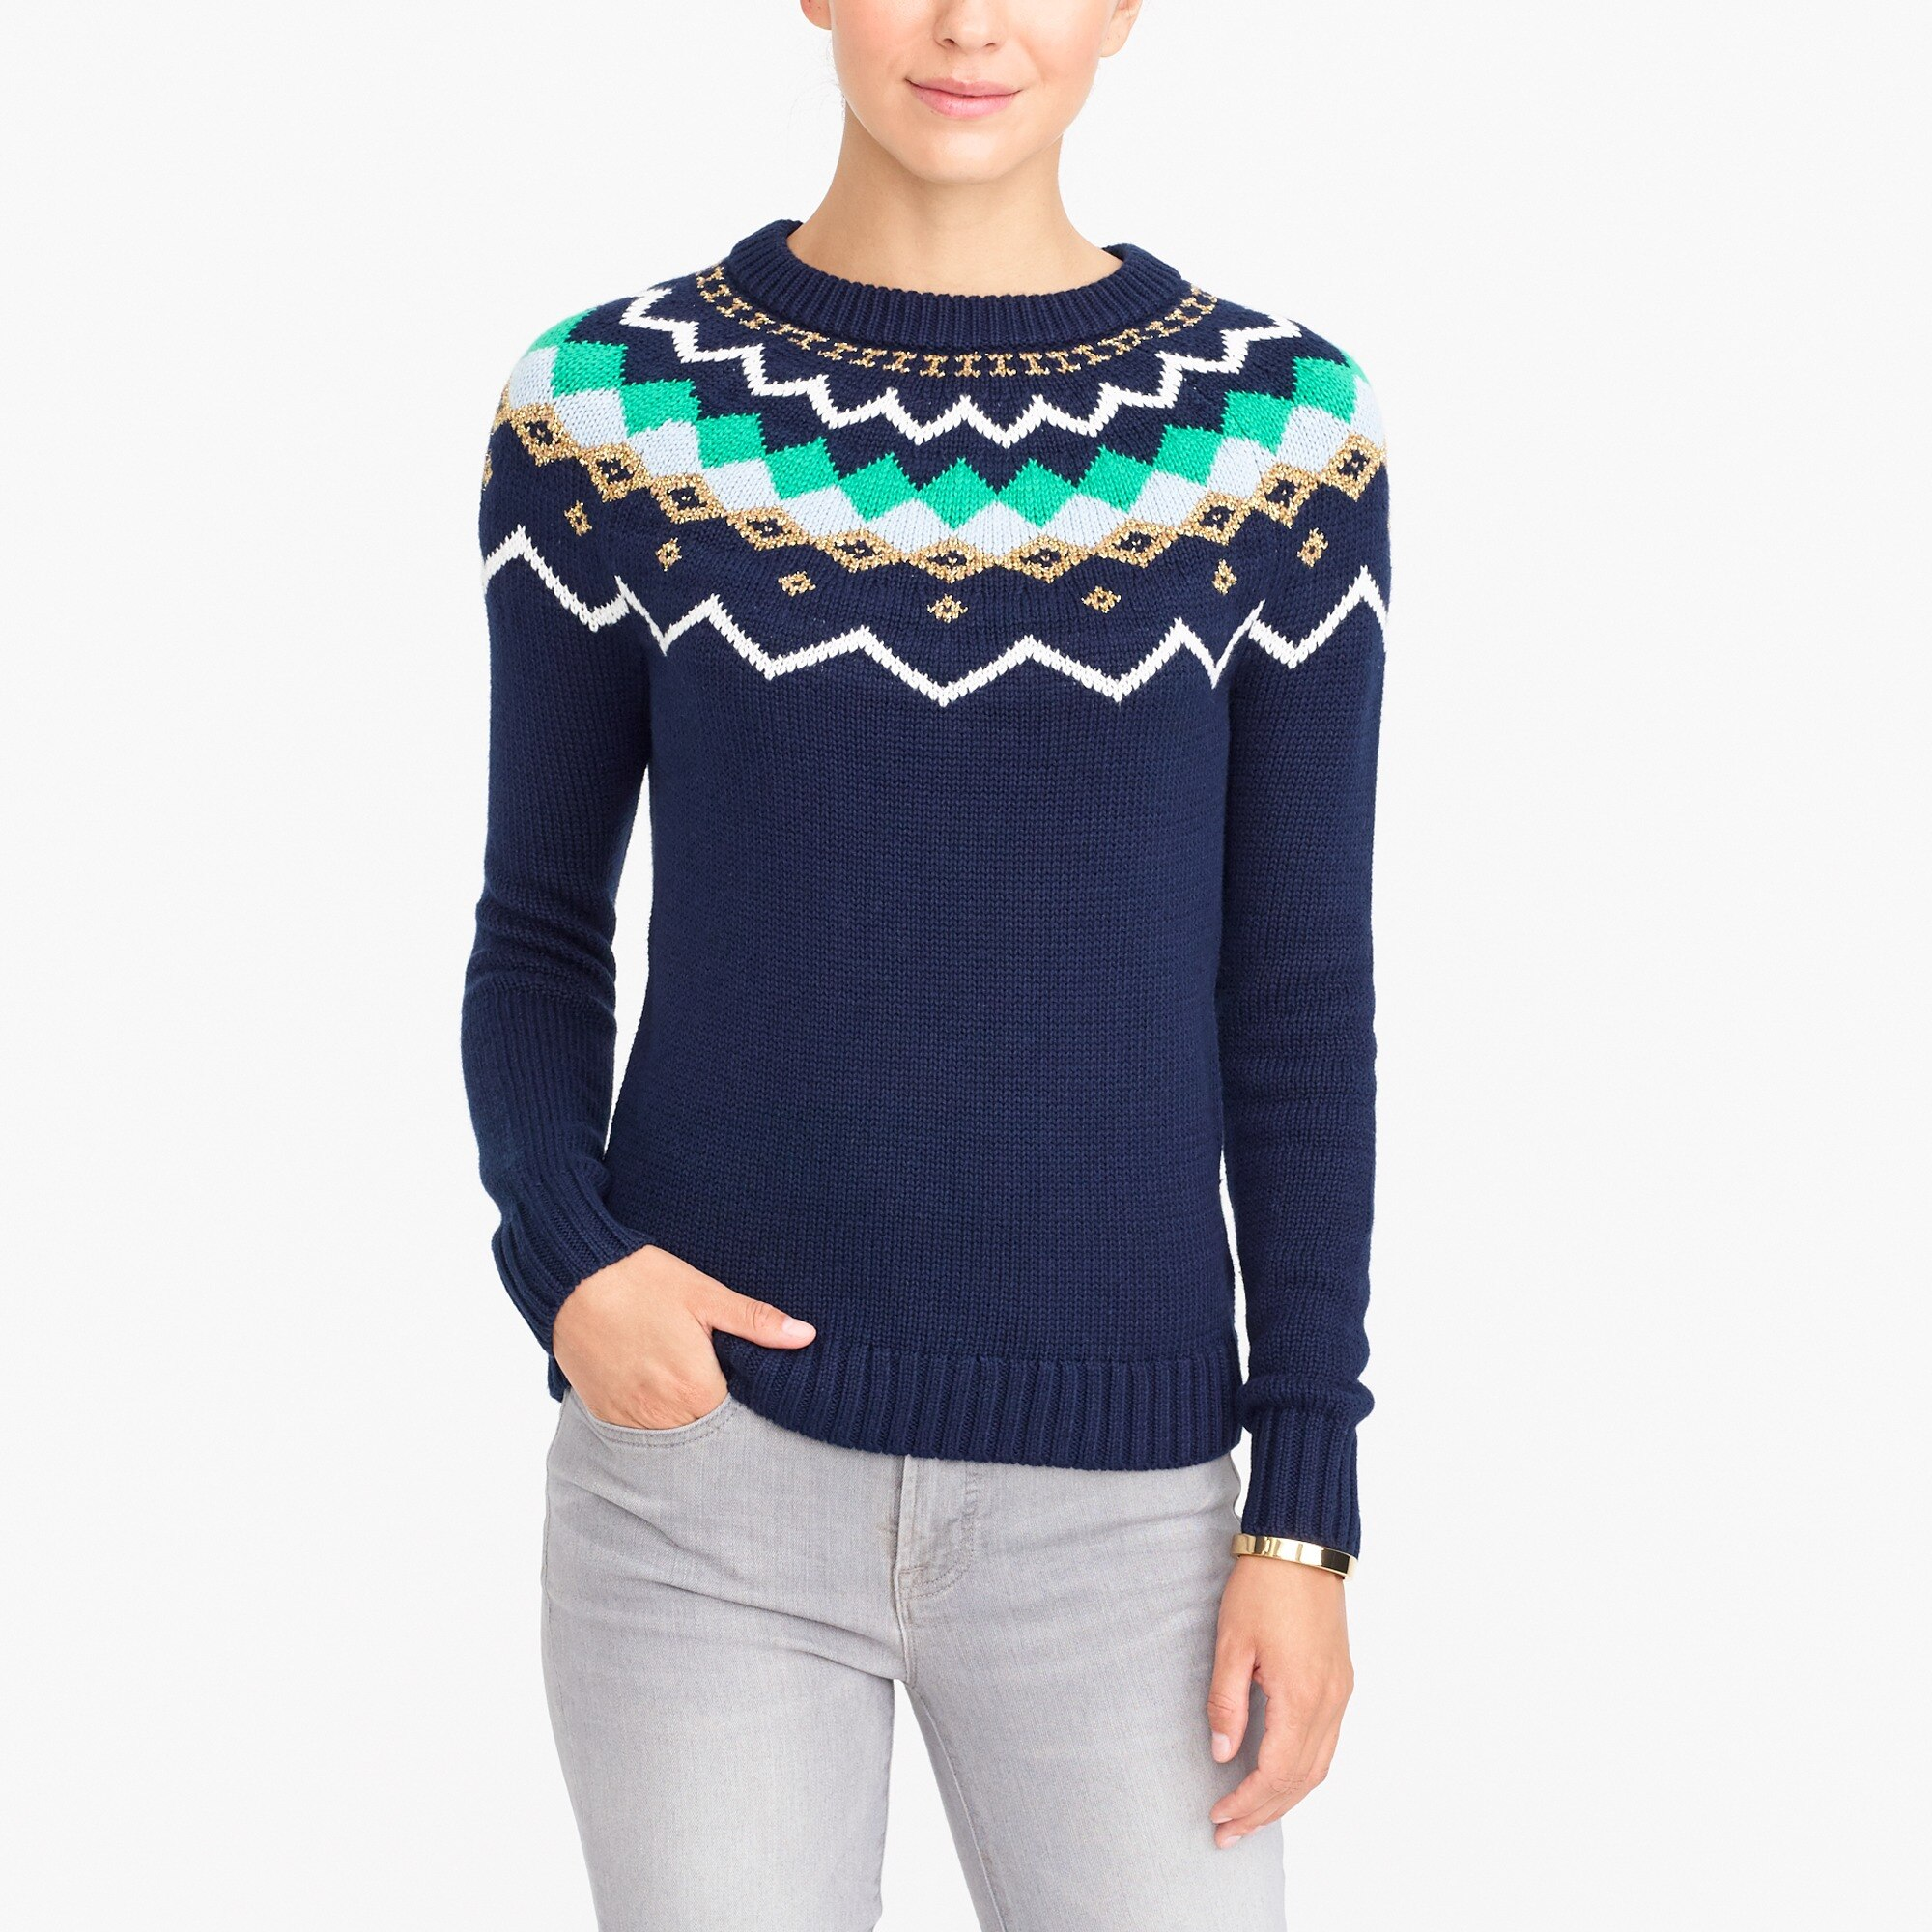 Lurex fair isle sweater